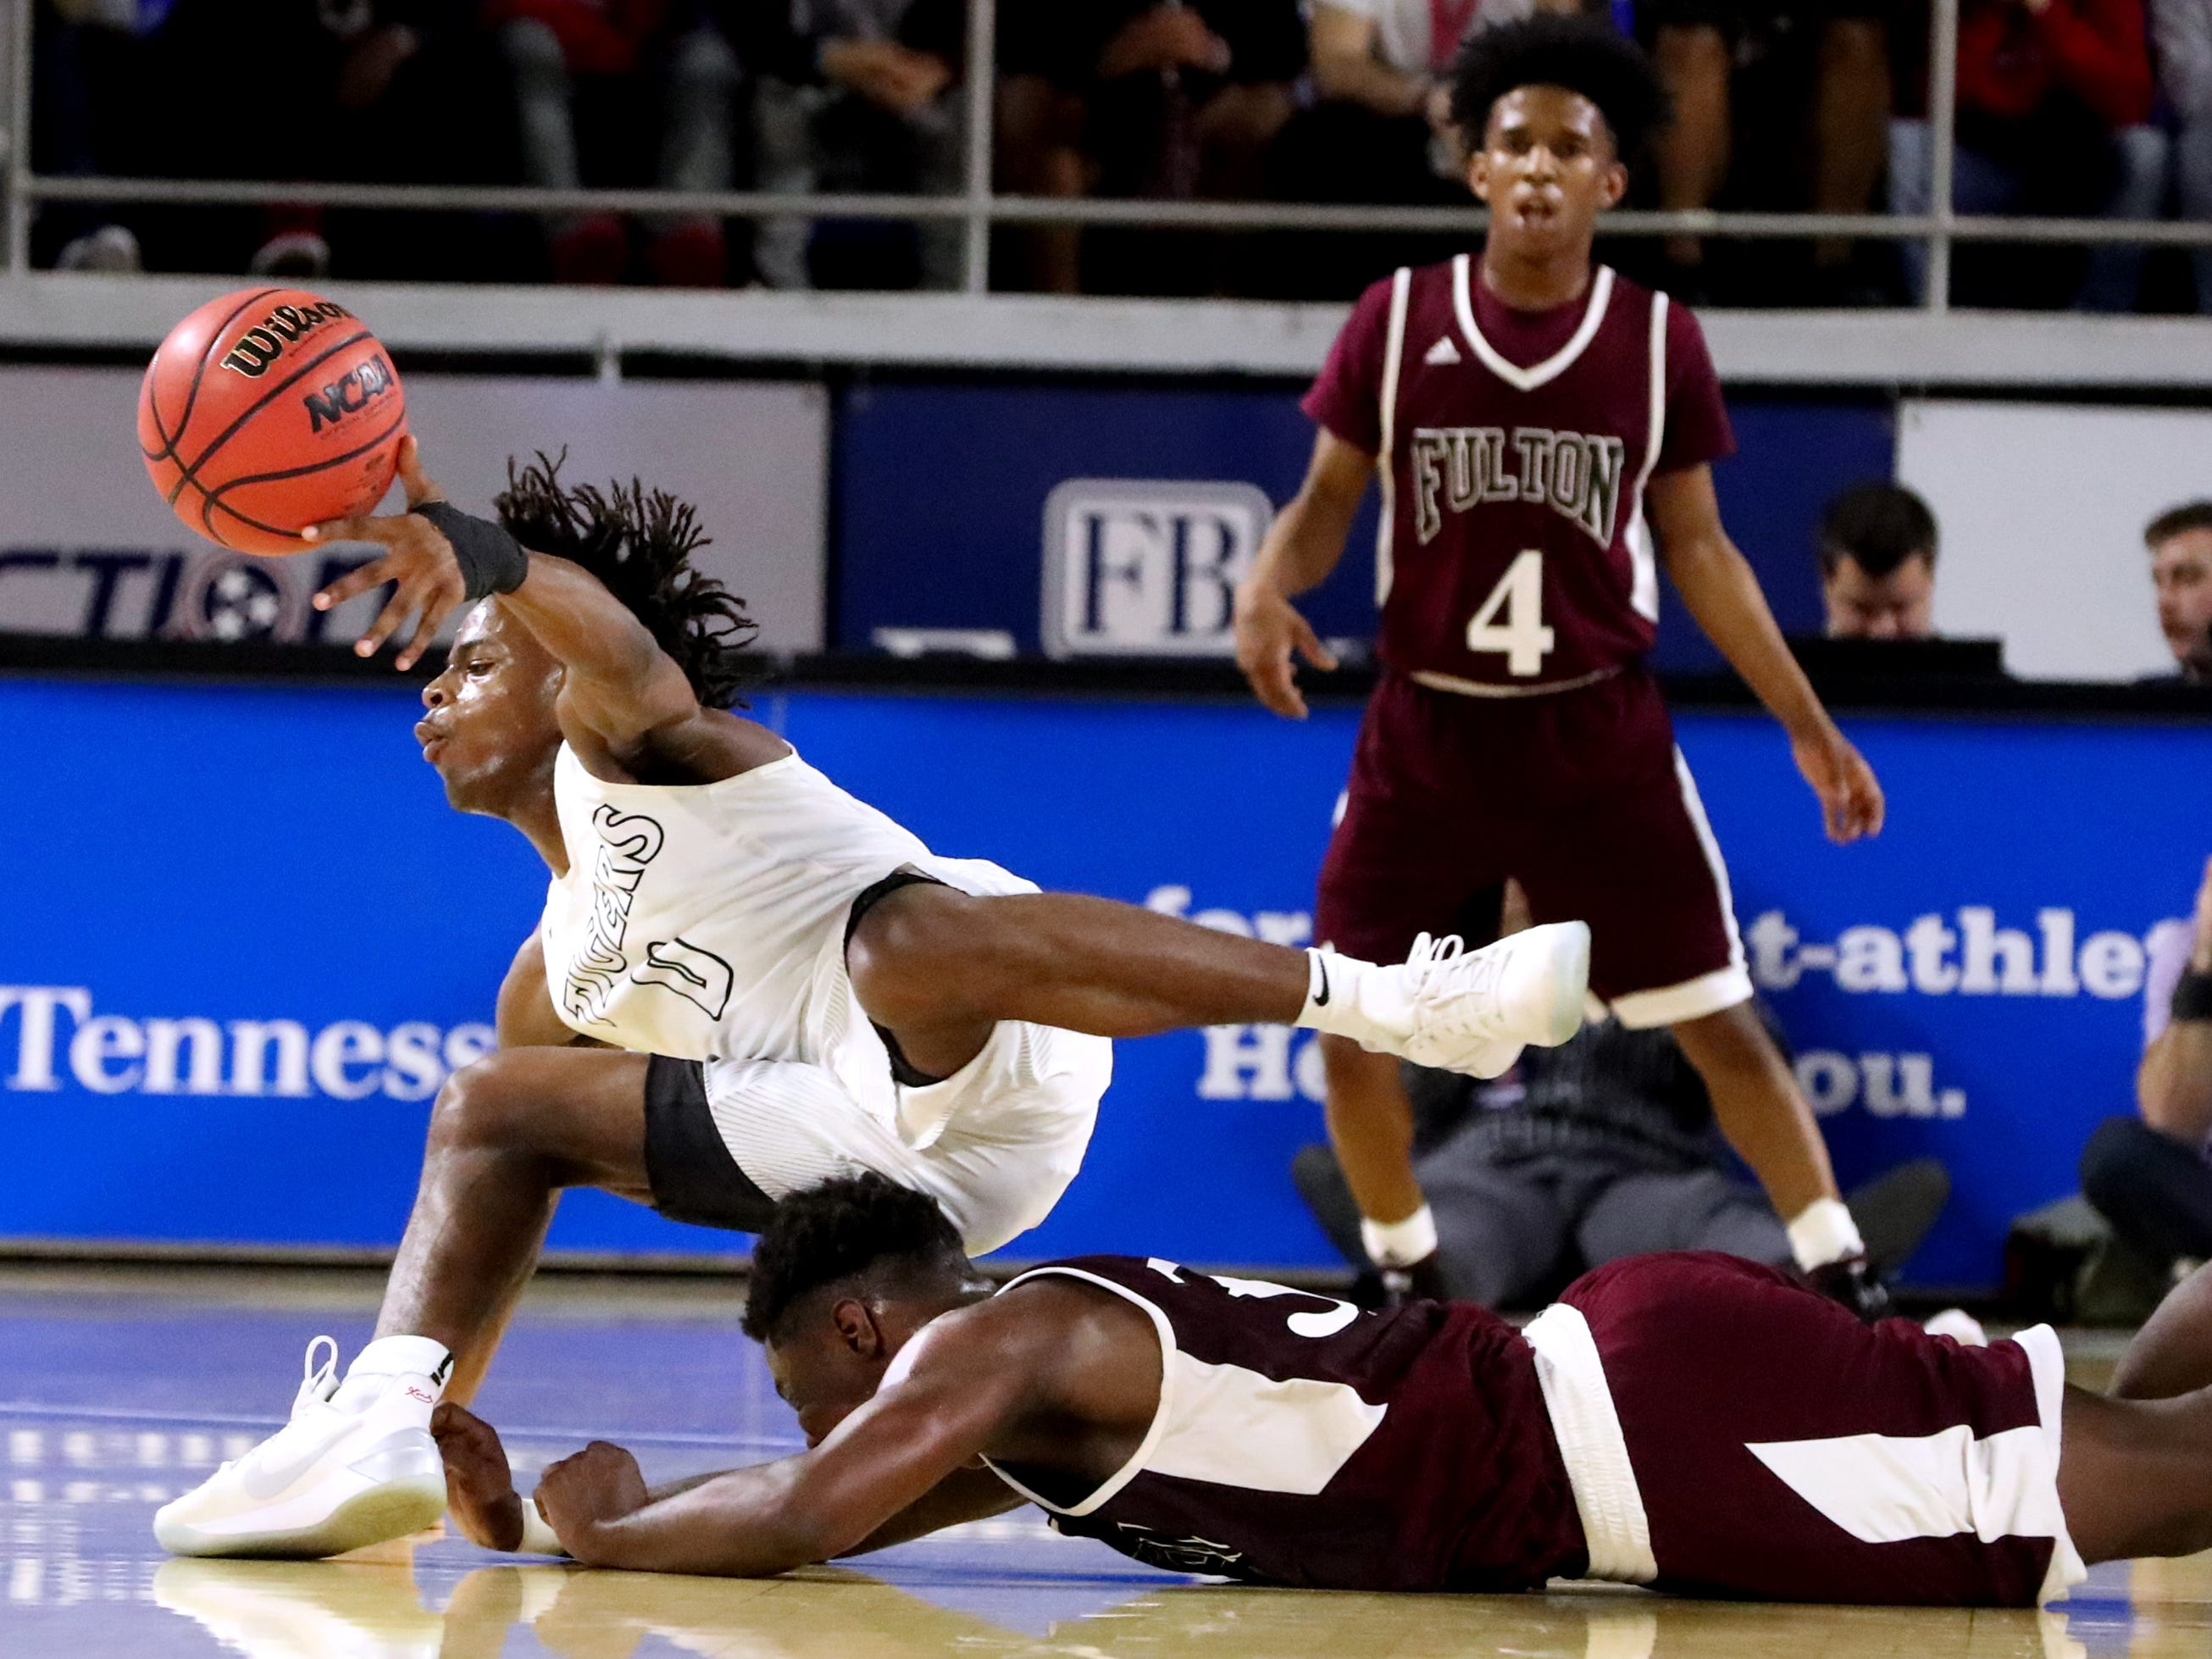 Mitchell's Michael Rice (0) trips over Fulton's Jashaun Fenderson (30) during the quarterfinal round of the TSSAA Class AA Boys State Tournament, on Wednesday, March 13, 2019, at Murphy Center in Murfreesboro, Tenn.